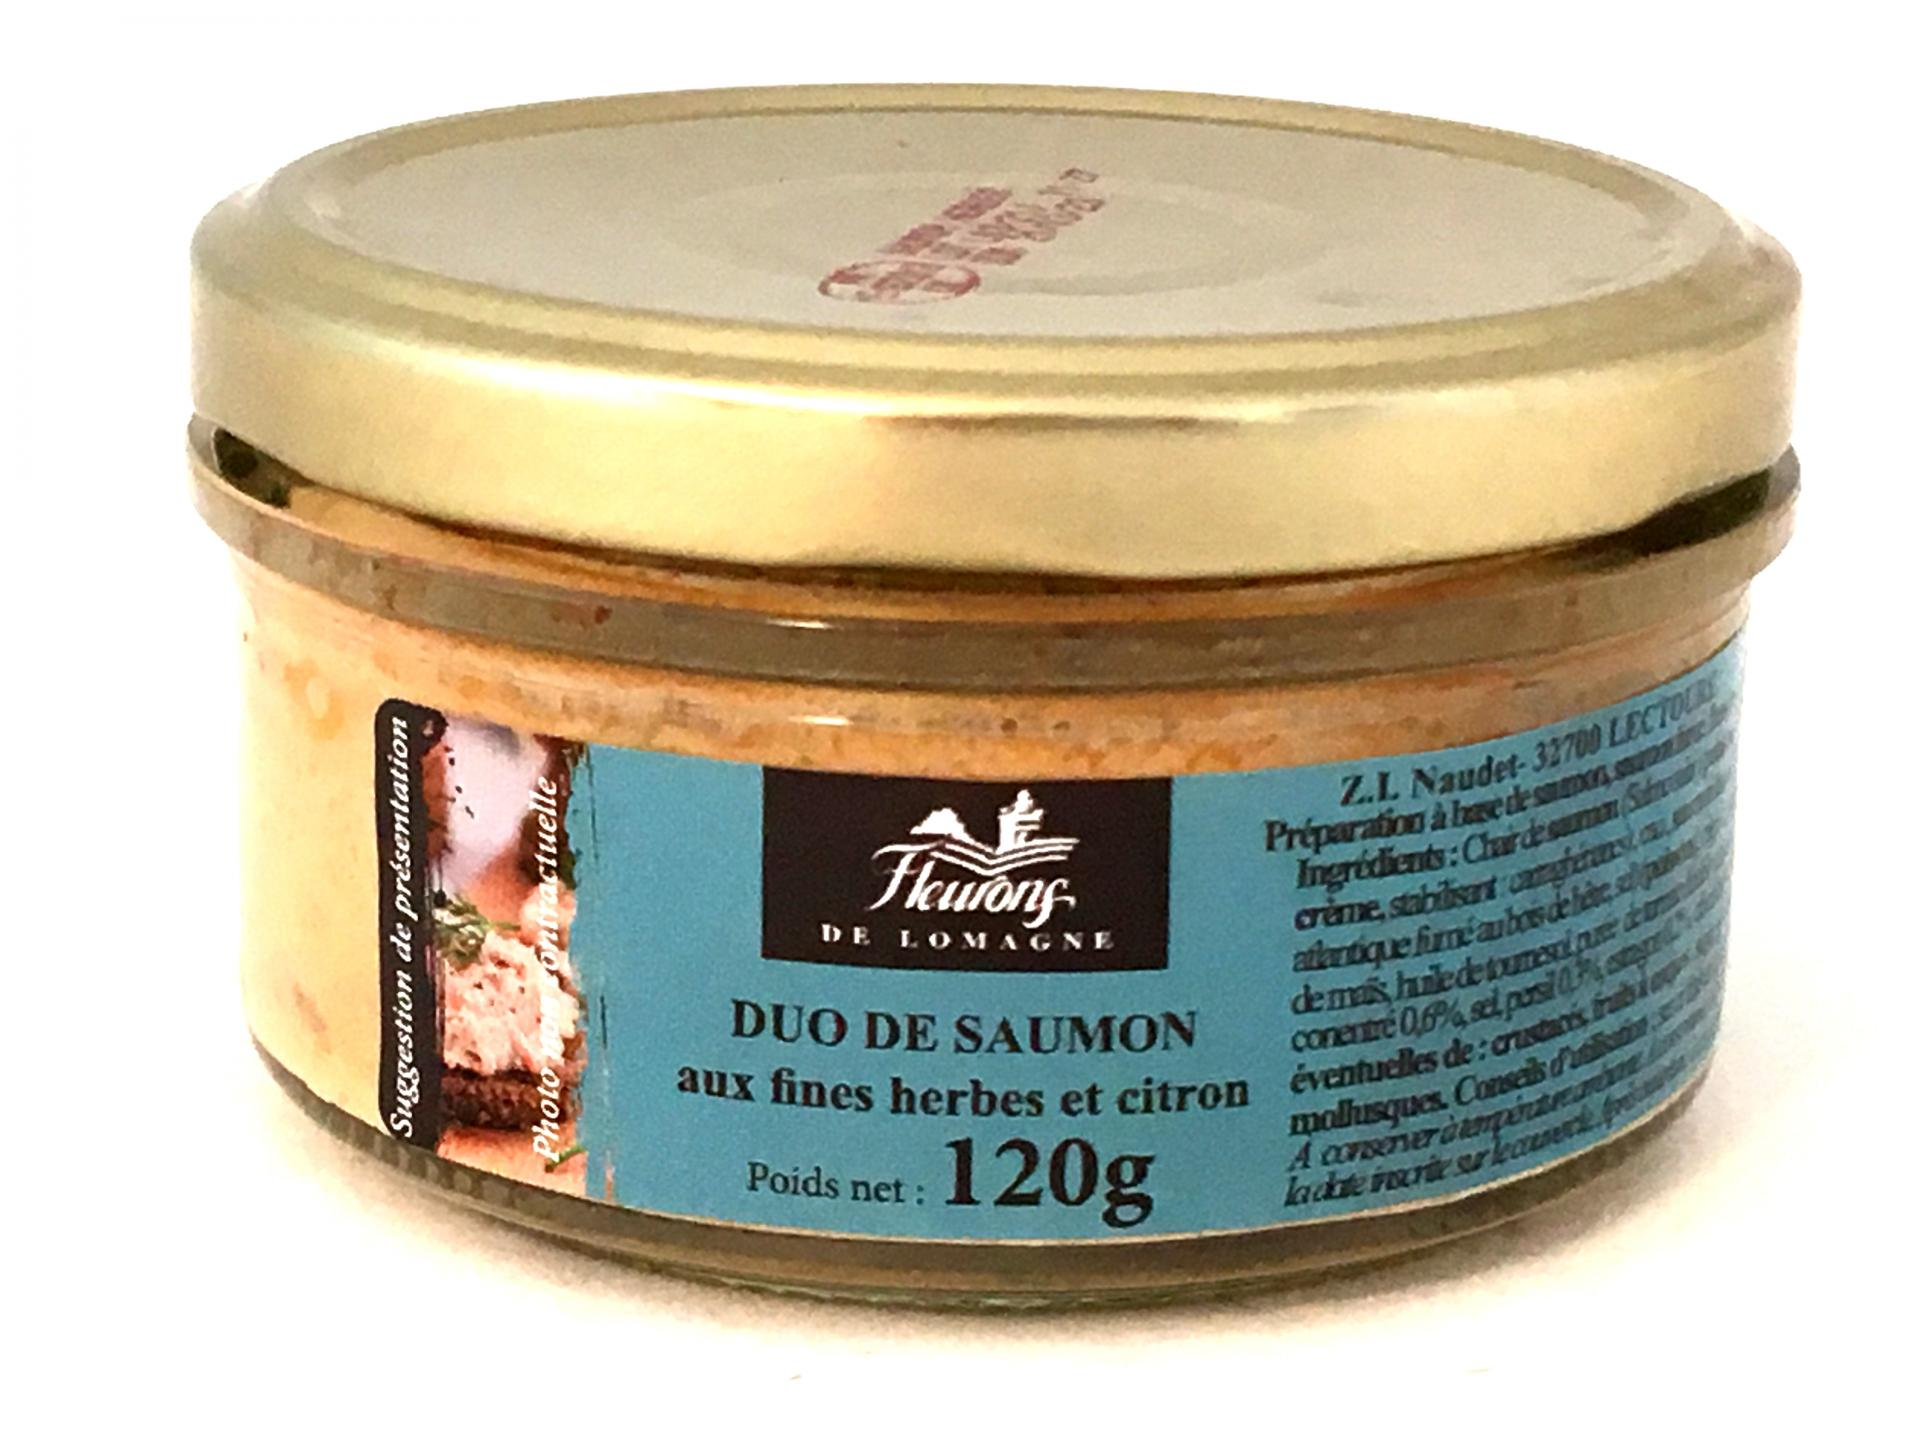 Duo de saumon aux fines herbes et citron 120g bocal 1